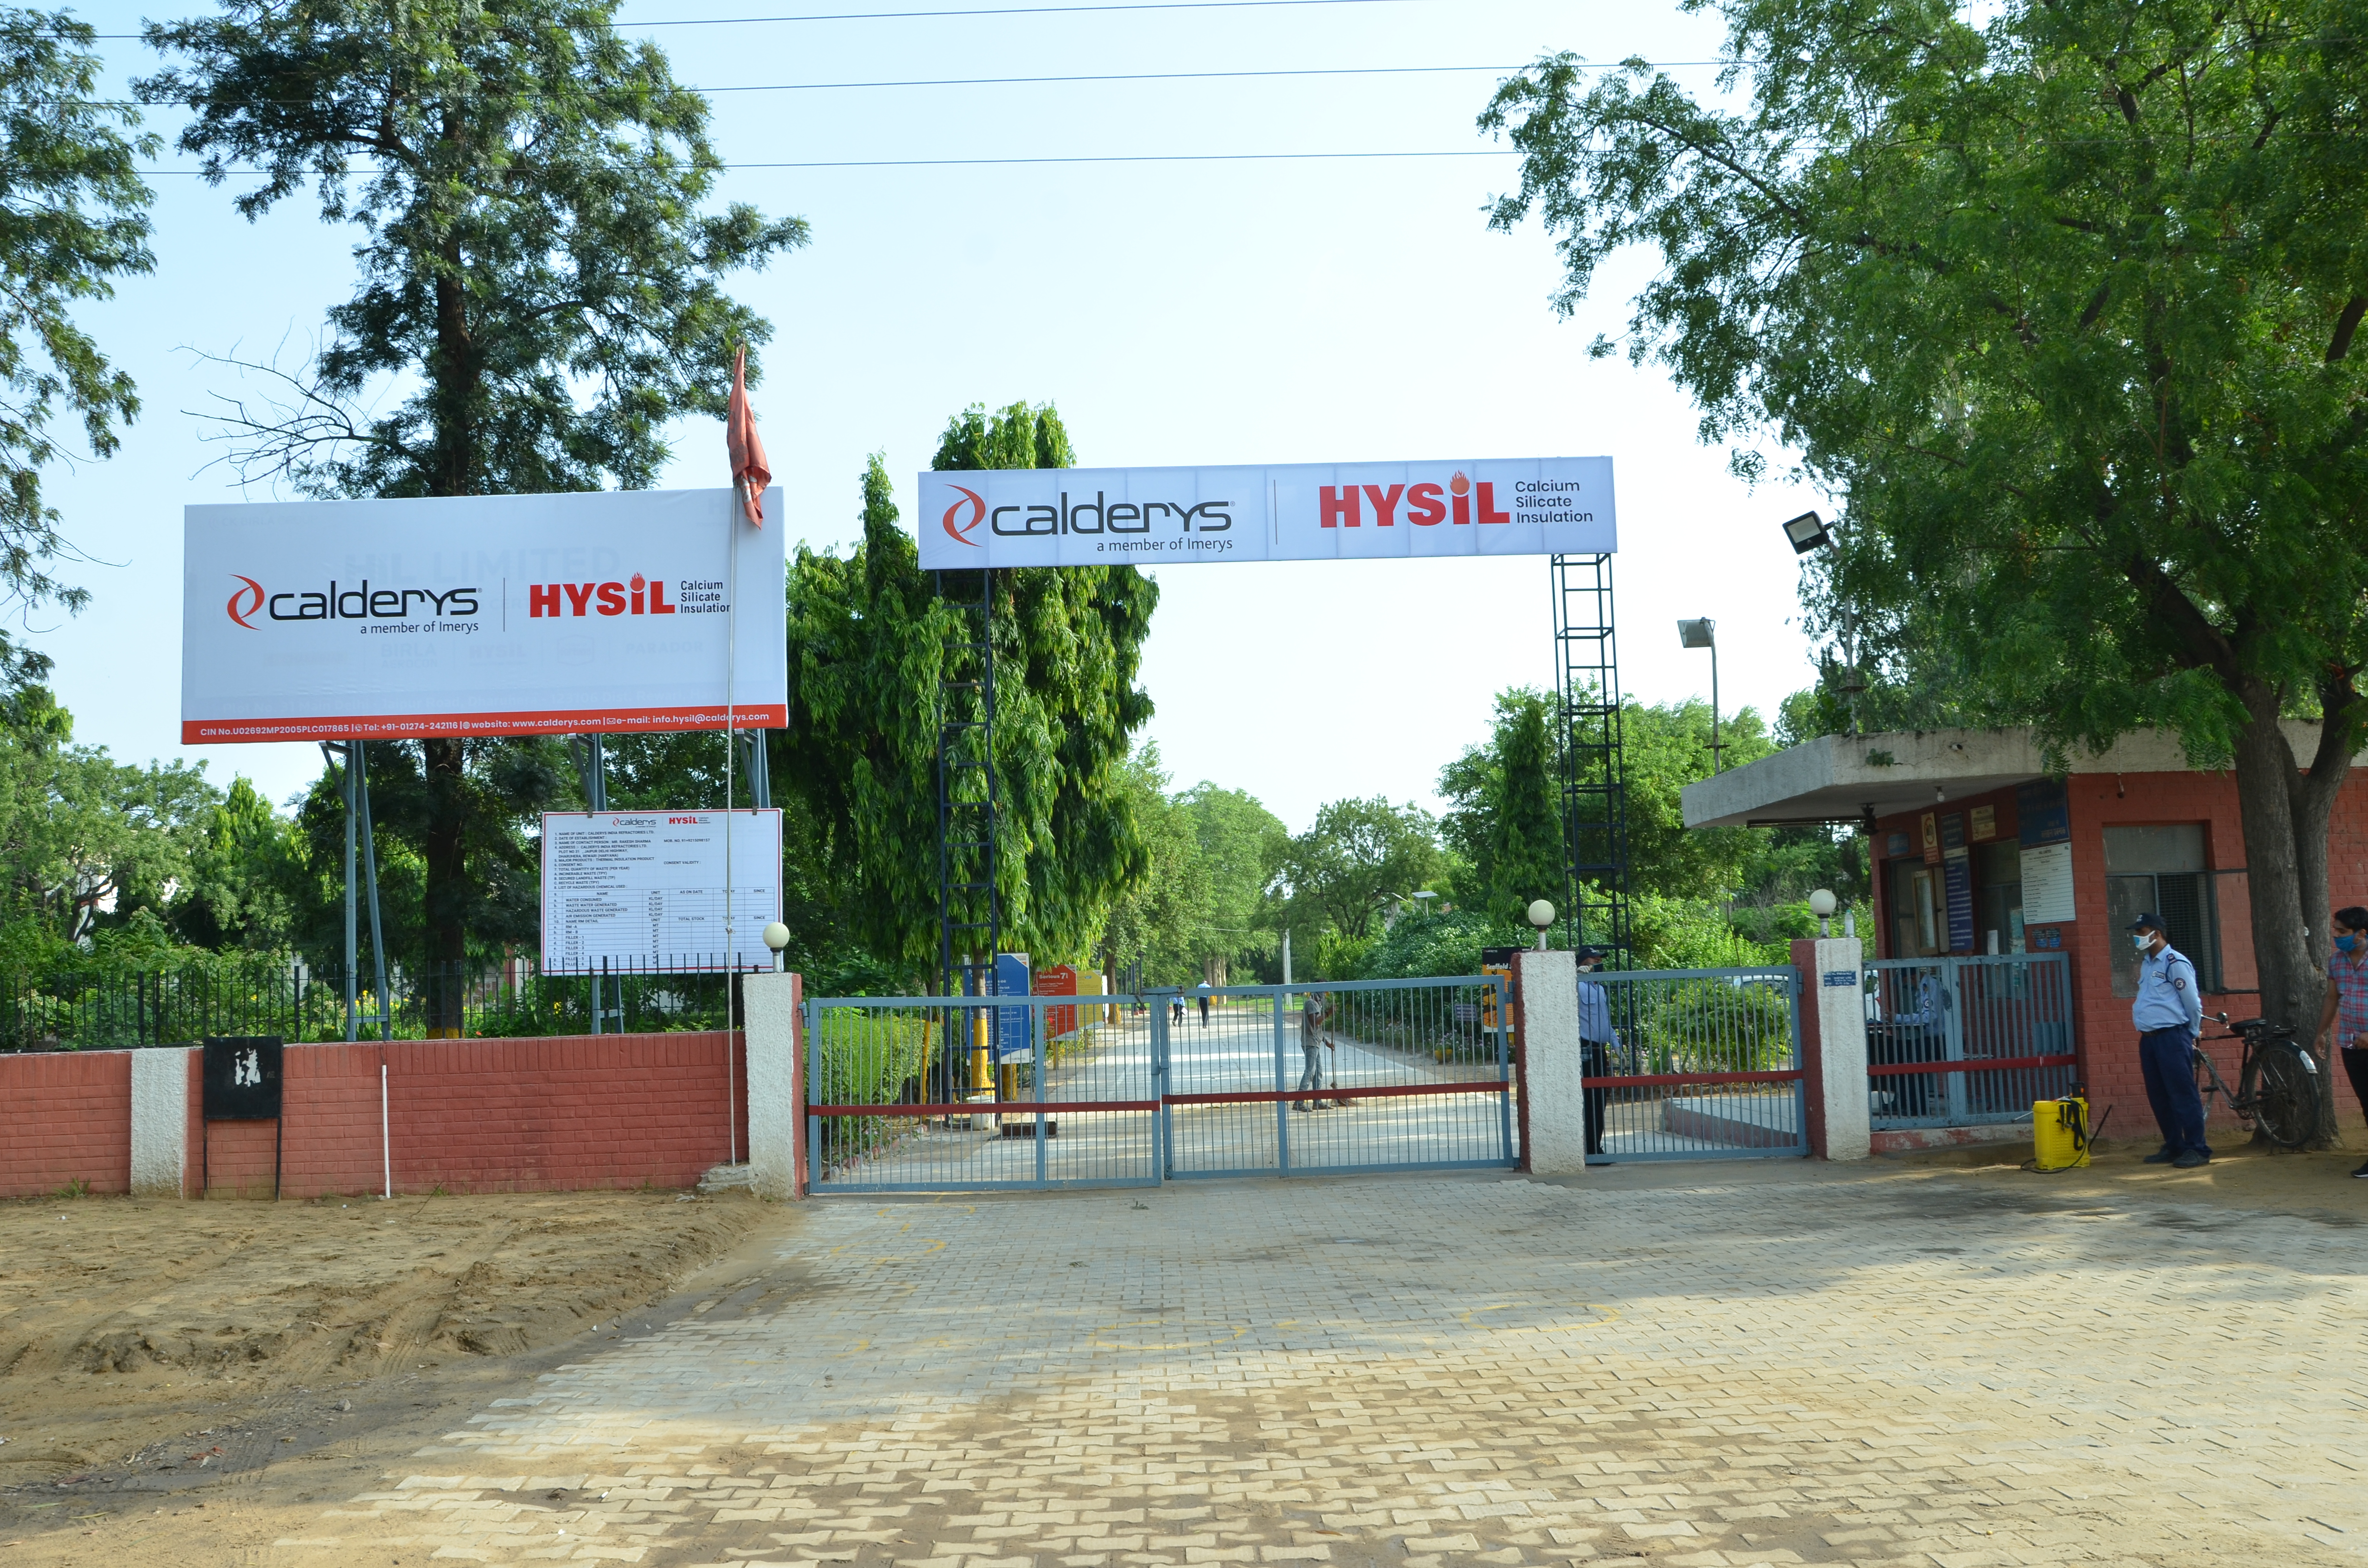 The Hysil plant after the acquisition